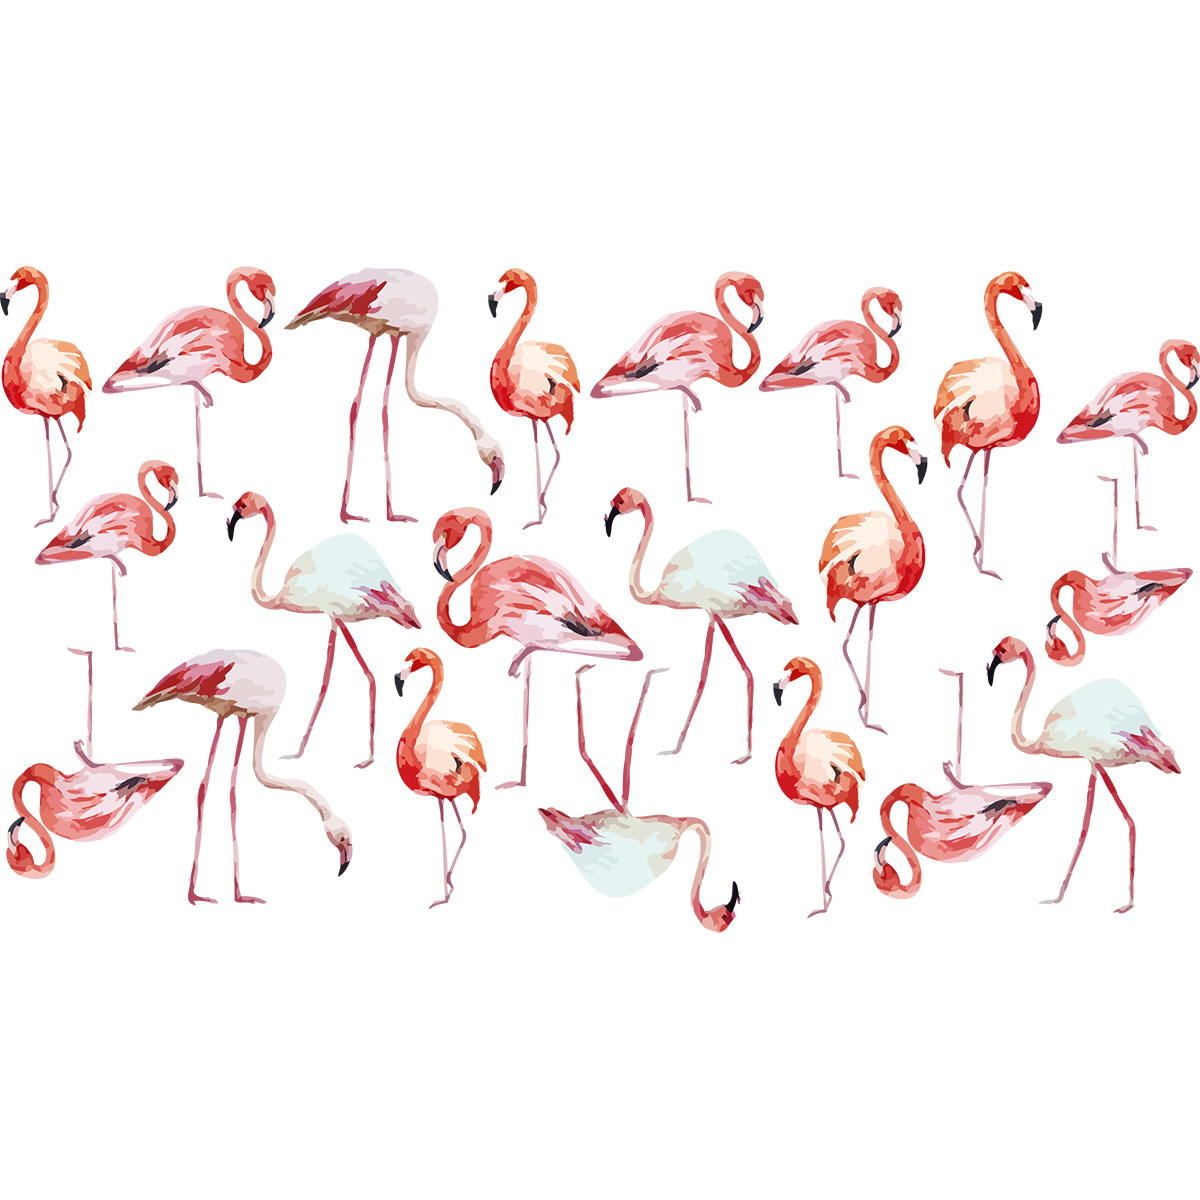 Sticker flamants roses vintage stickers animaux oiseaux - Stickers flamant rose ...